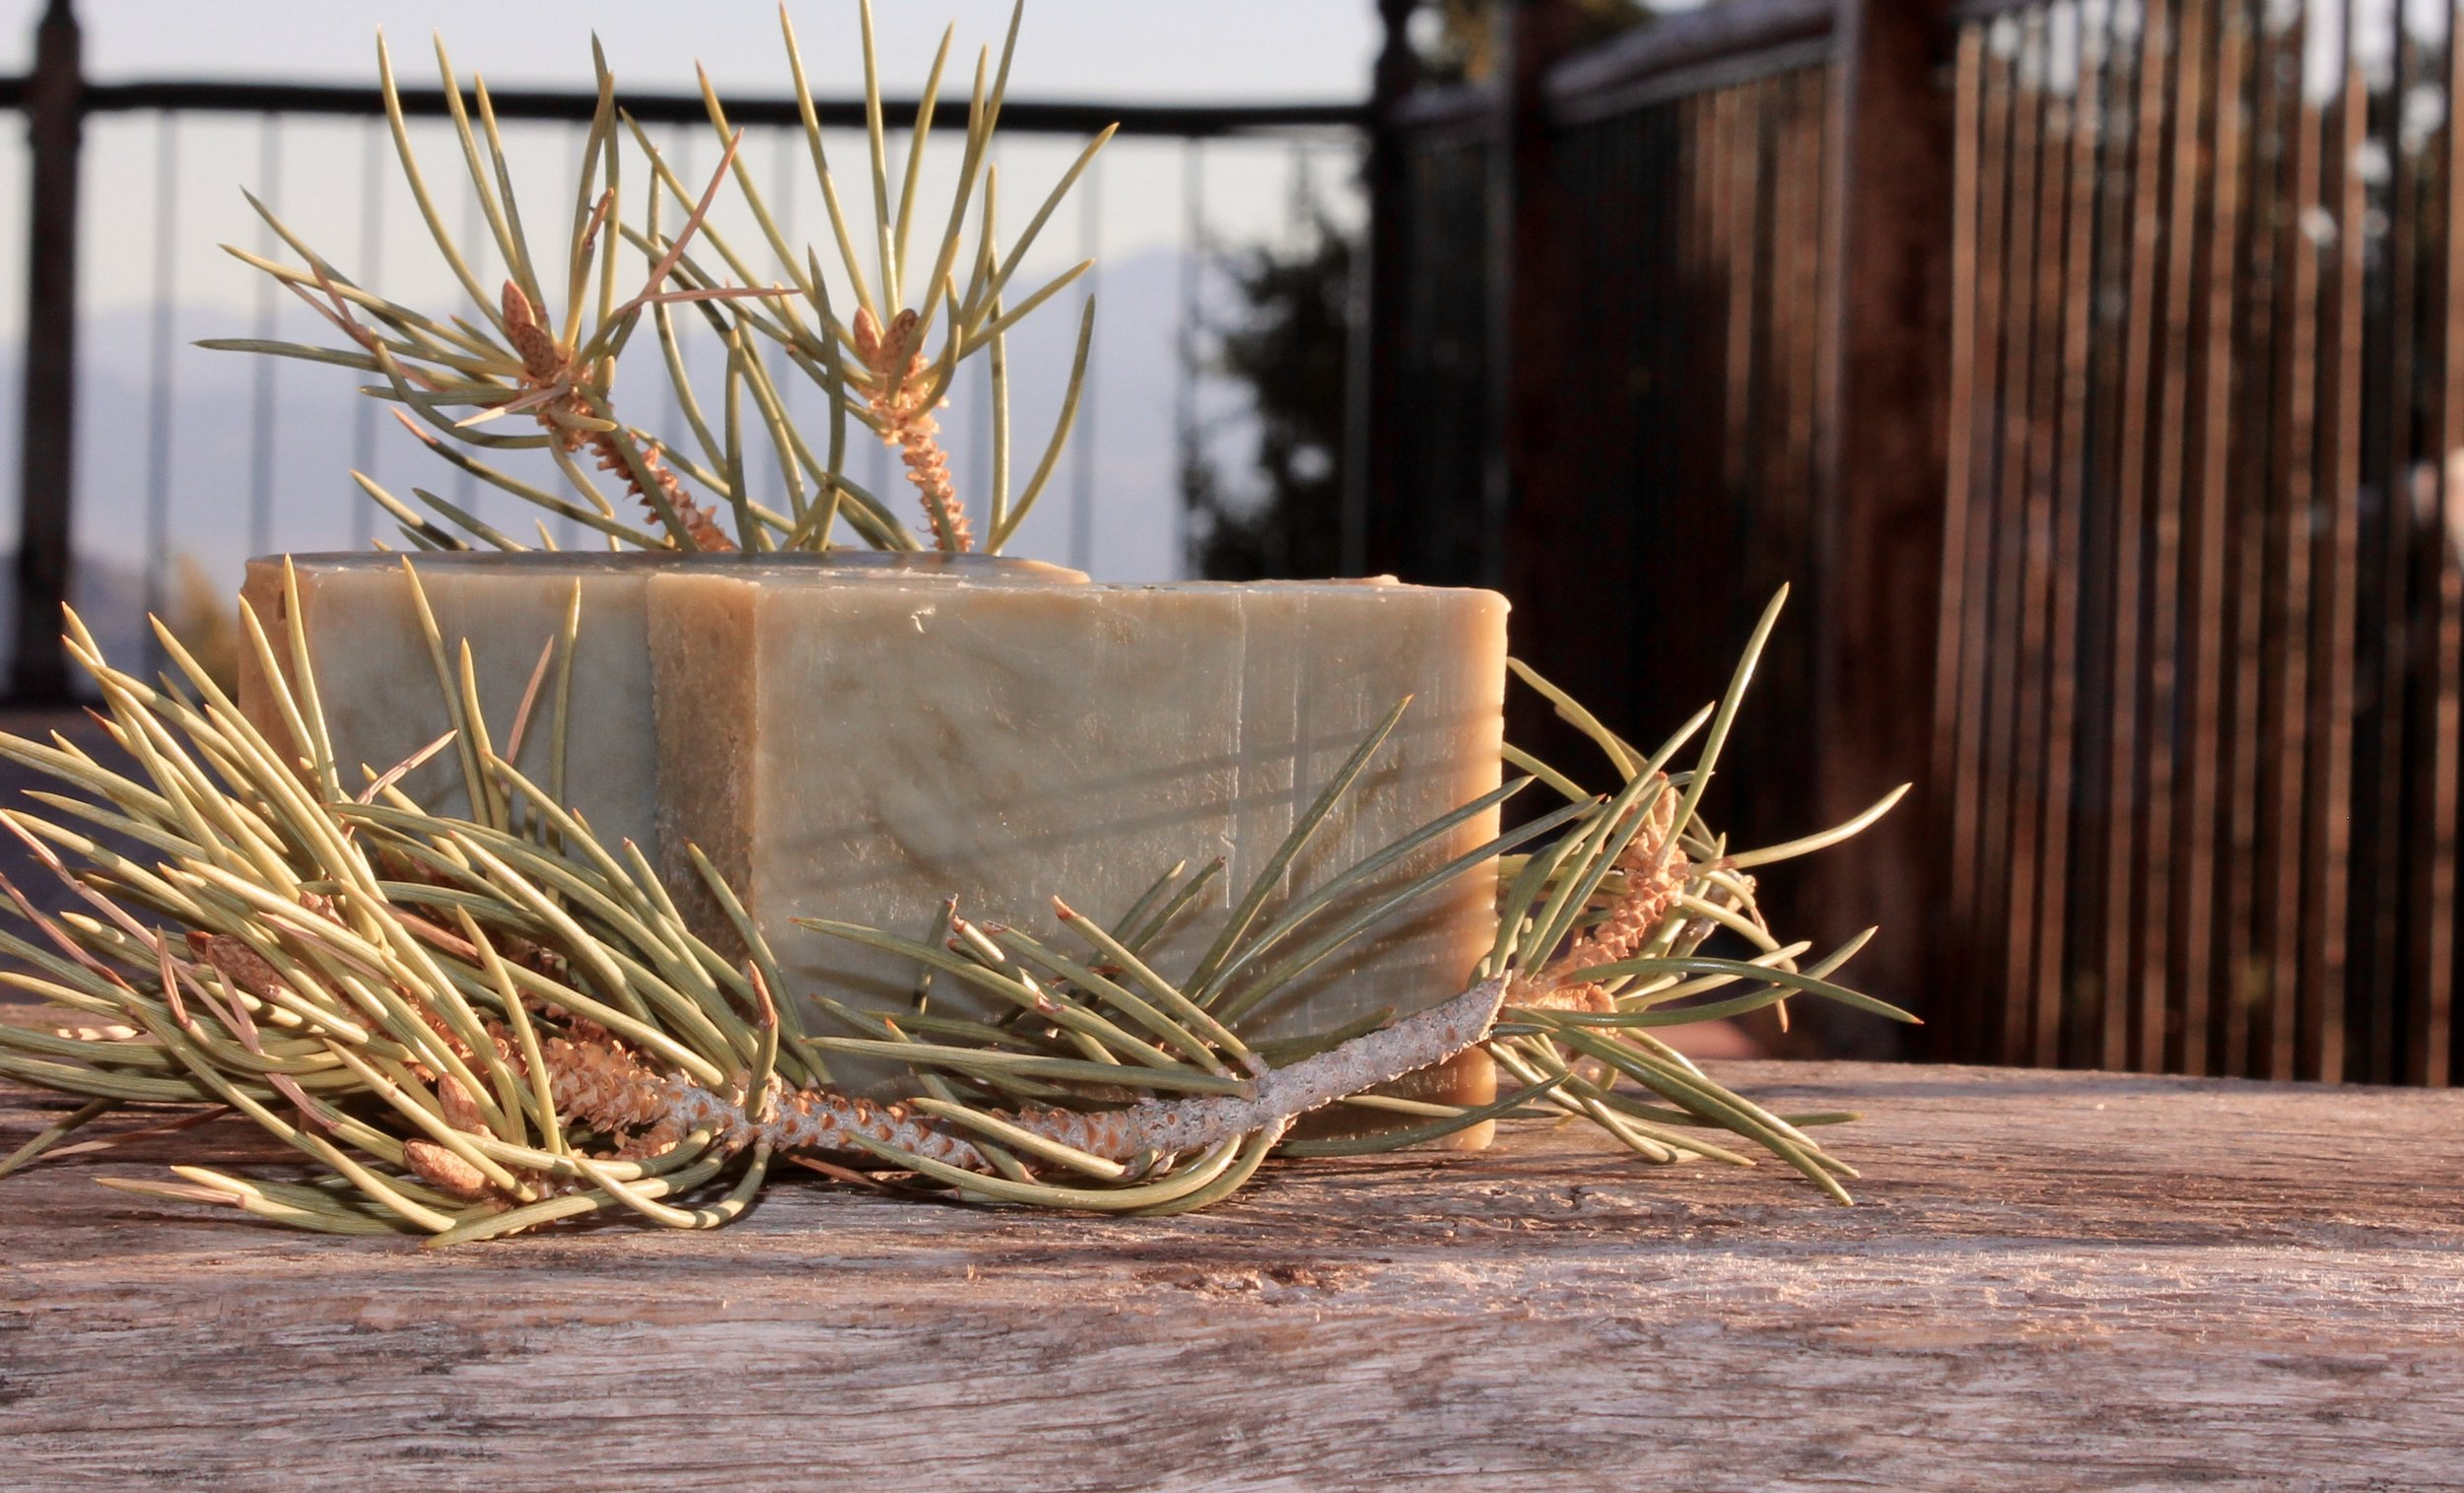 I LOVE making our own handmade soap. This is my number 2 favorite for Christmas & Holidays---Evergreen Pine. I either use powdered Nettle leaves OR, in this case French Green Clay for a natural lovely green tint. It's sunrise in this pic, so the green is muted a bit.